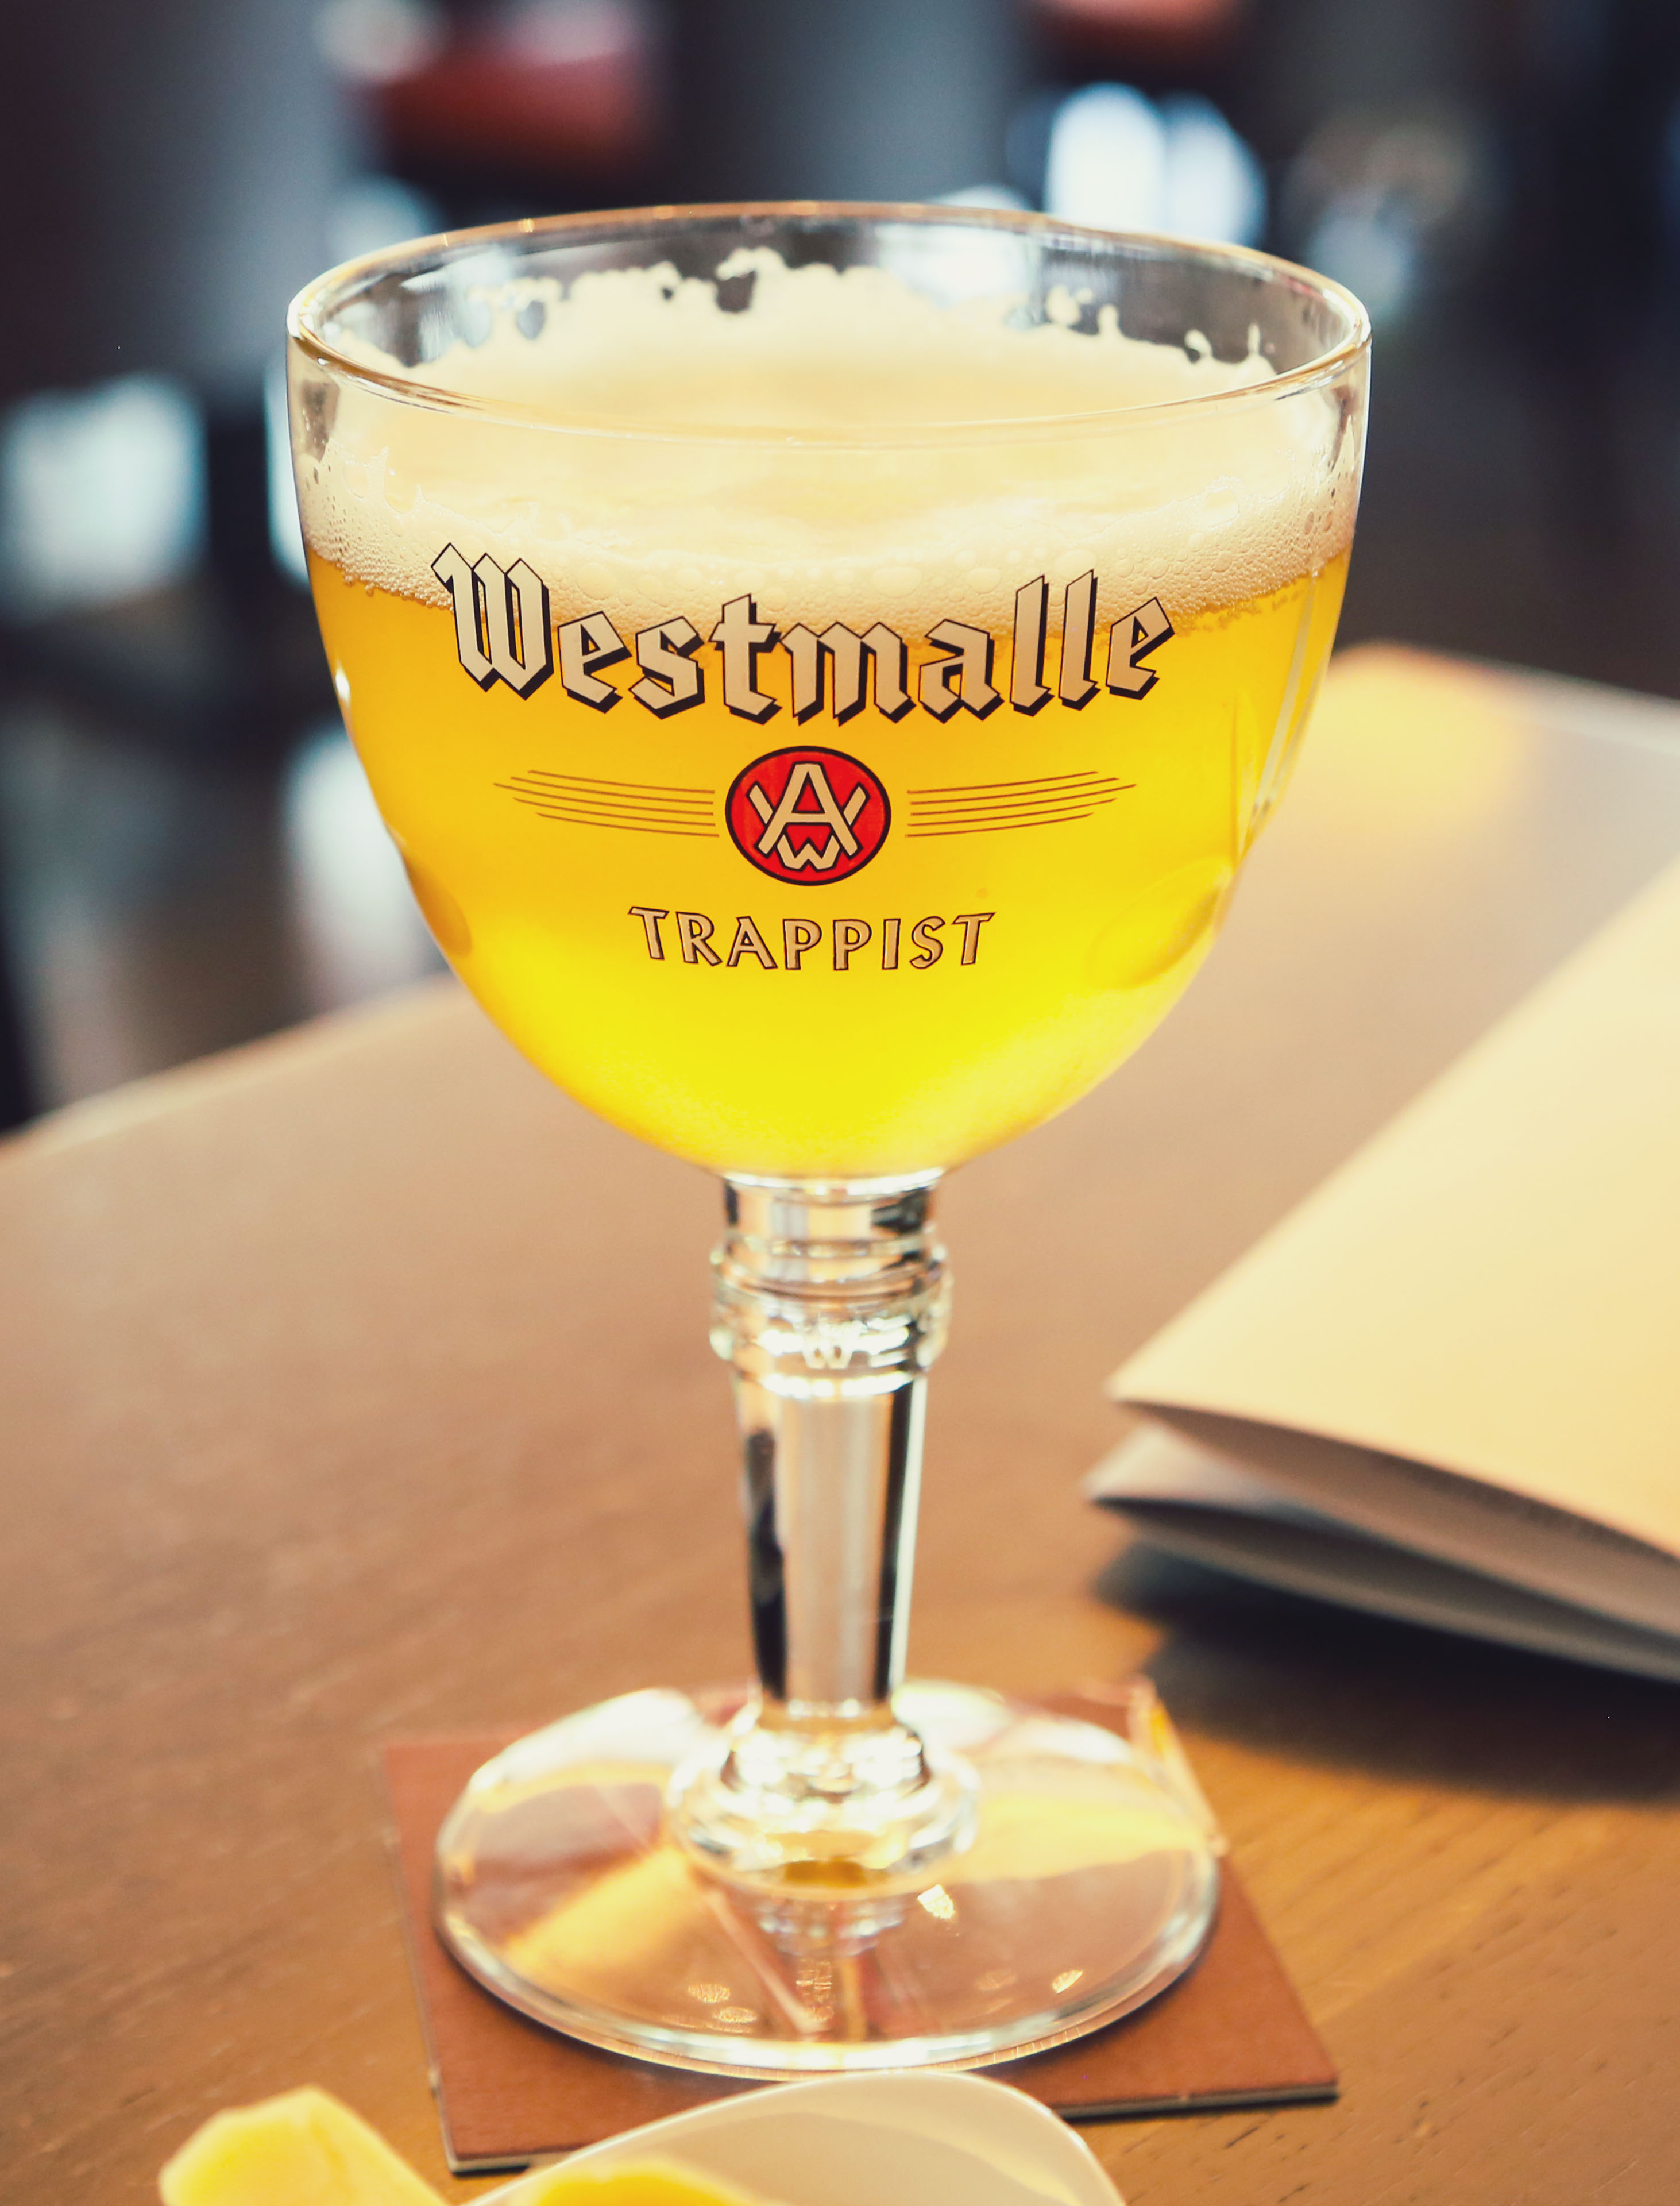 Westmalle extra abbey beer